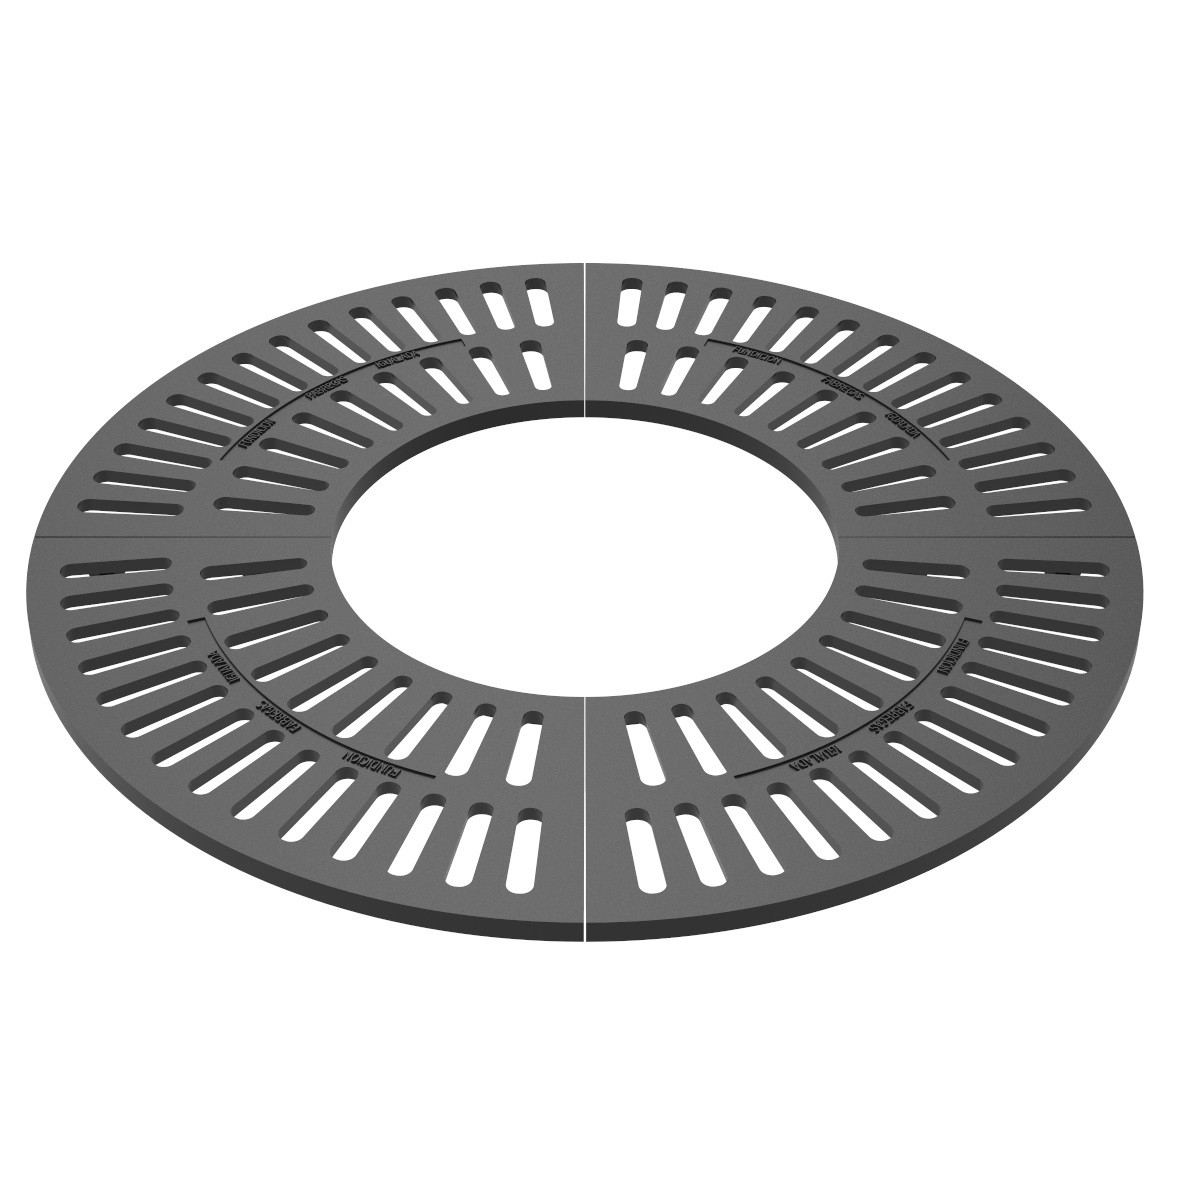 Round tree grill 2 pieces - C-47B